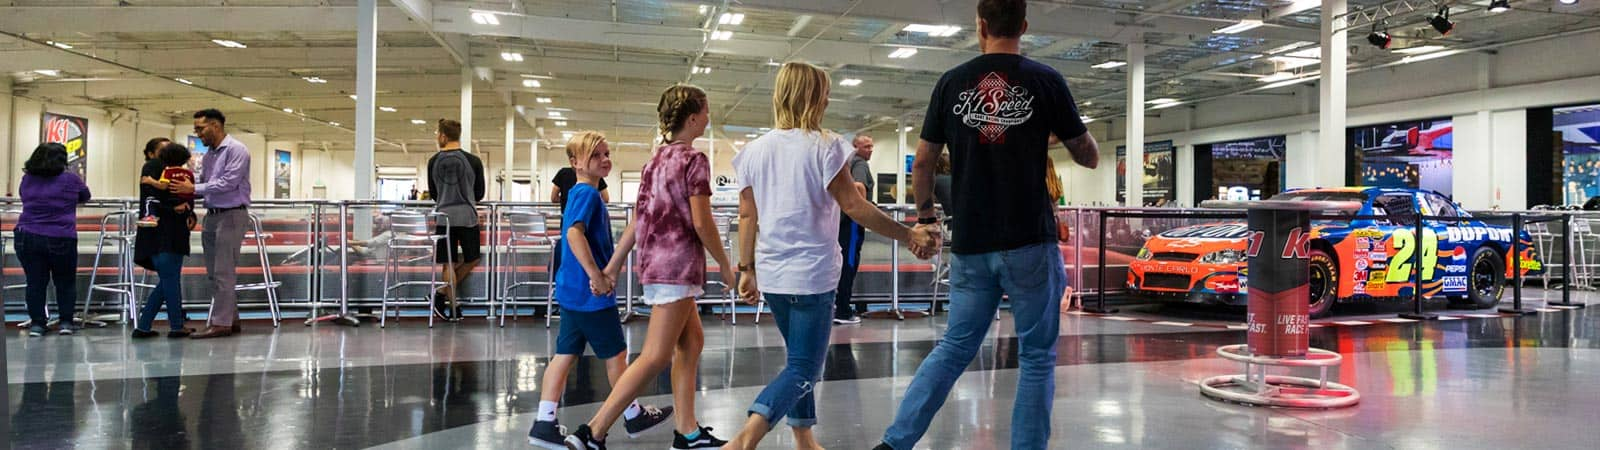 family walking into K1 Speed